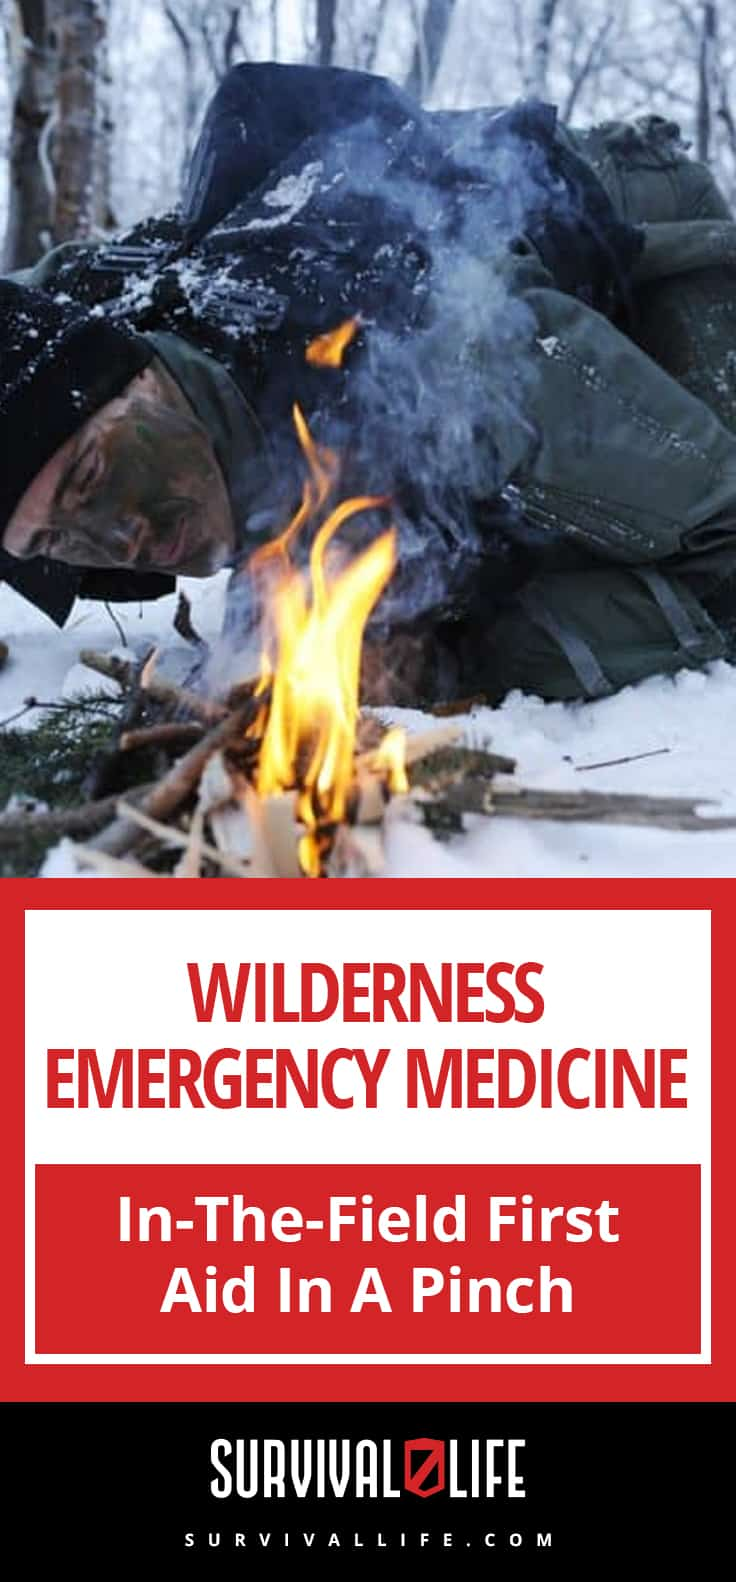 Placard | Wilderness Emergency Medicine | In-The-Field First Aid In A Pinch